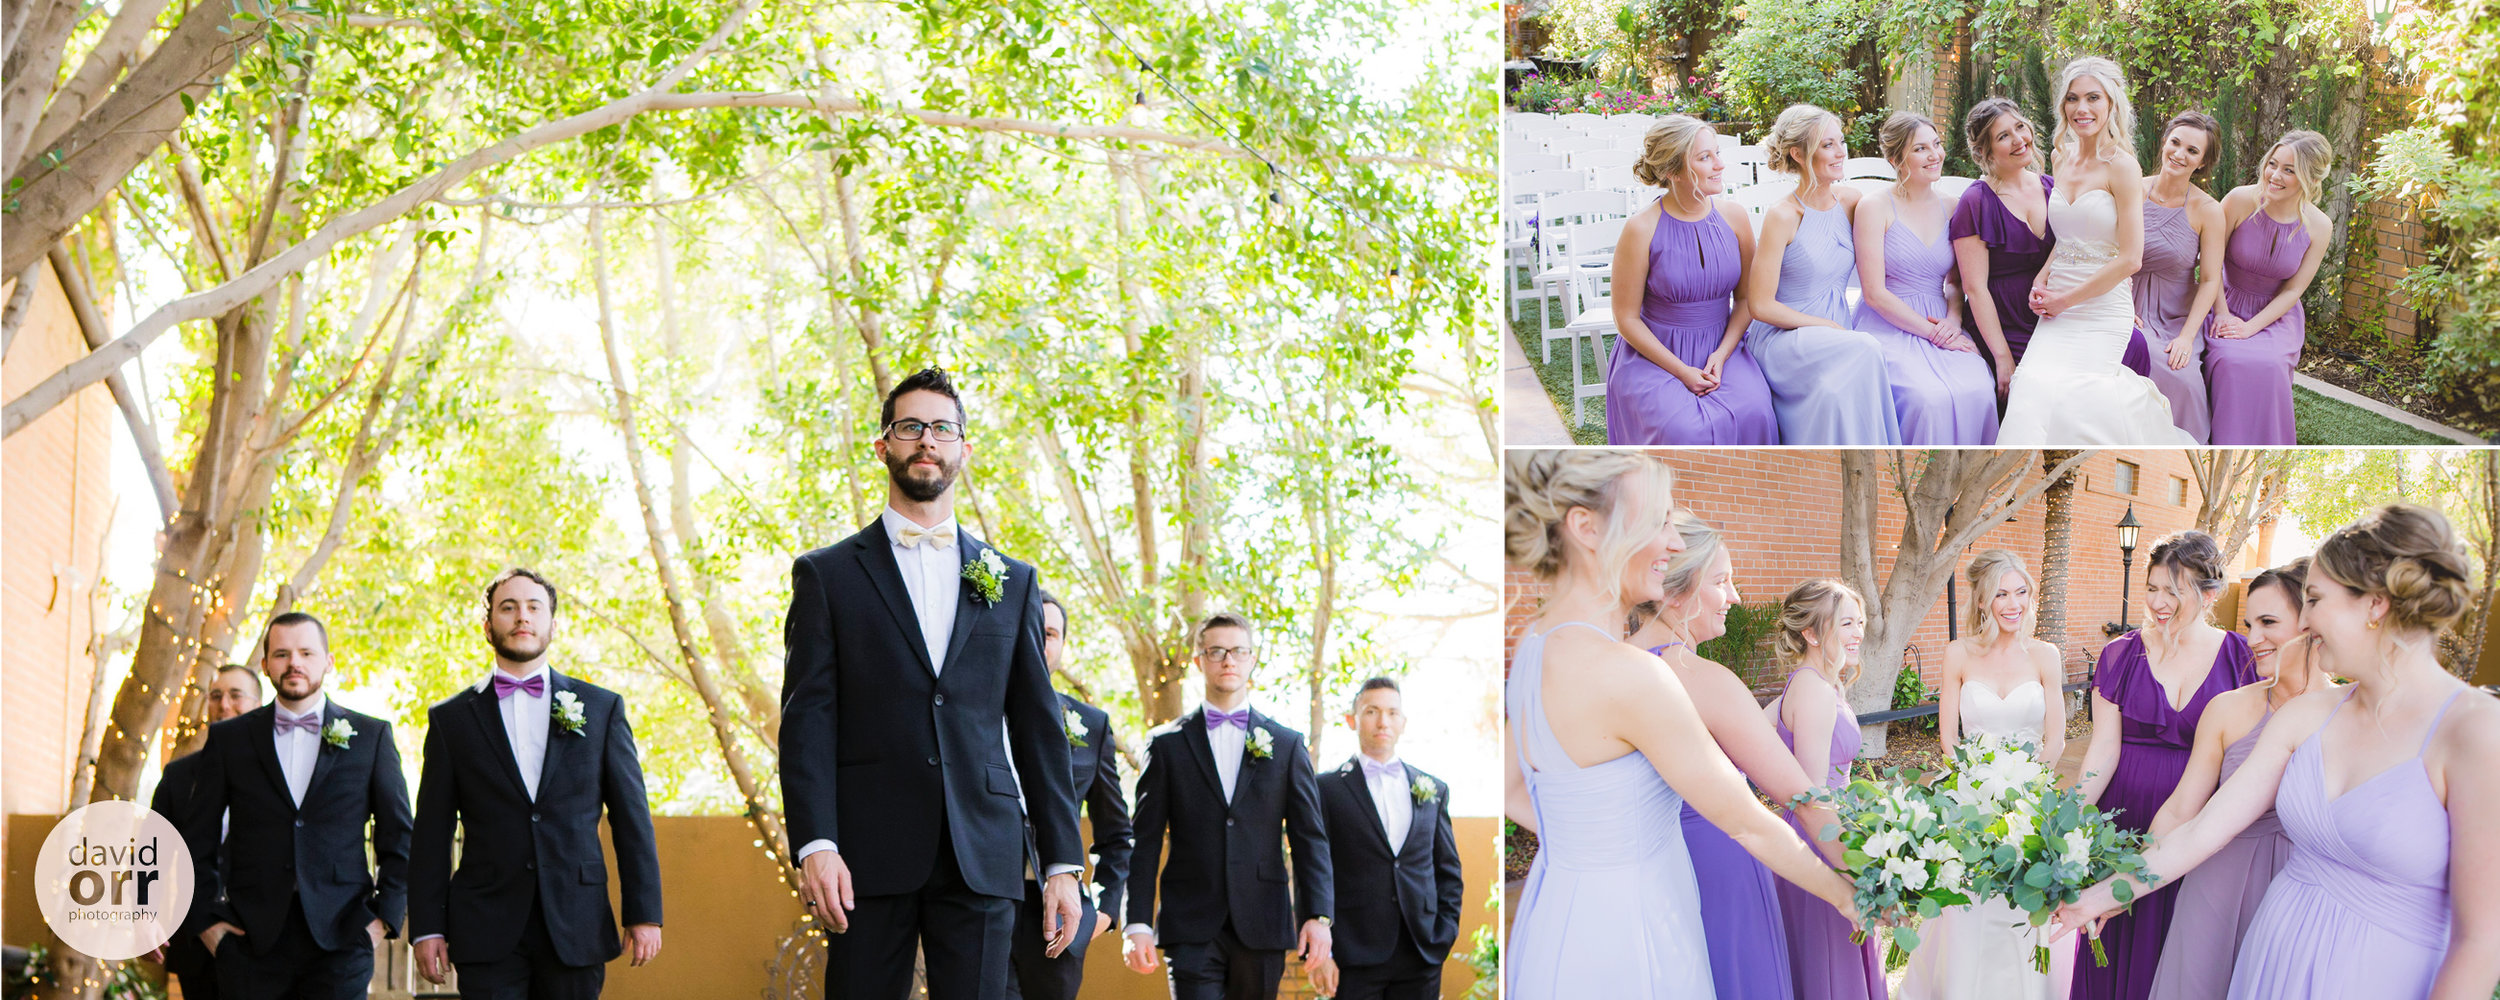 DavidOrrPhotography_Mesa-Regency-Garden-Wedding7.jpg